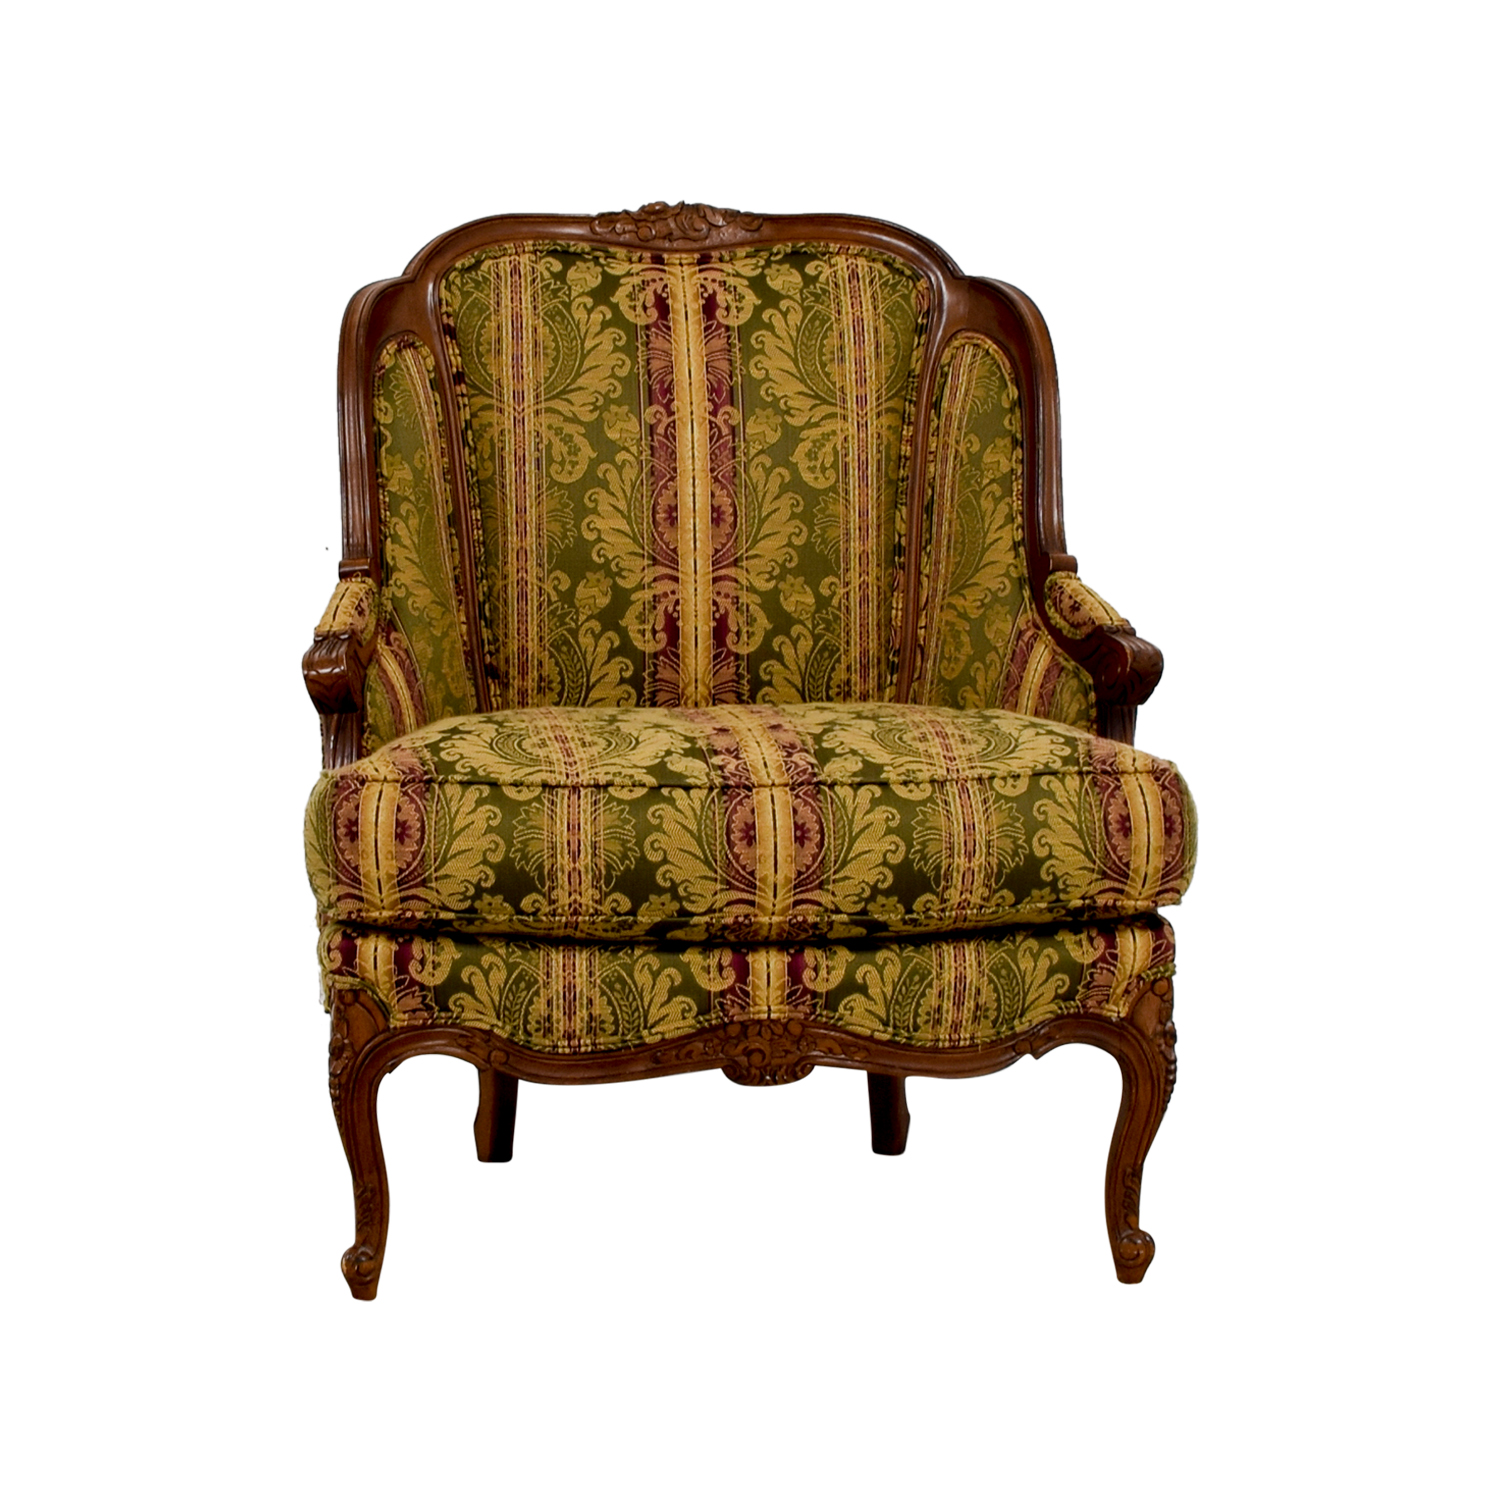 Drexel Heritage Drexel Heritage Bergere Green Gold and Burgundy Chair nyc